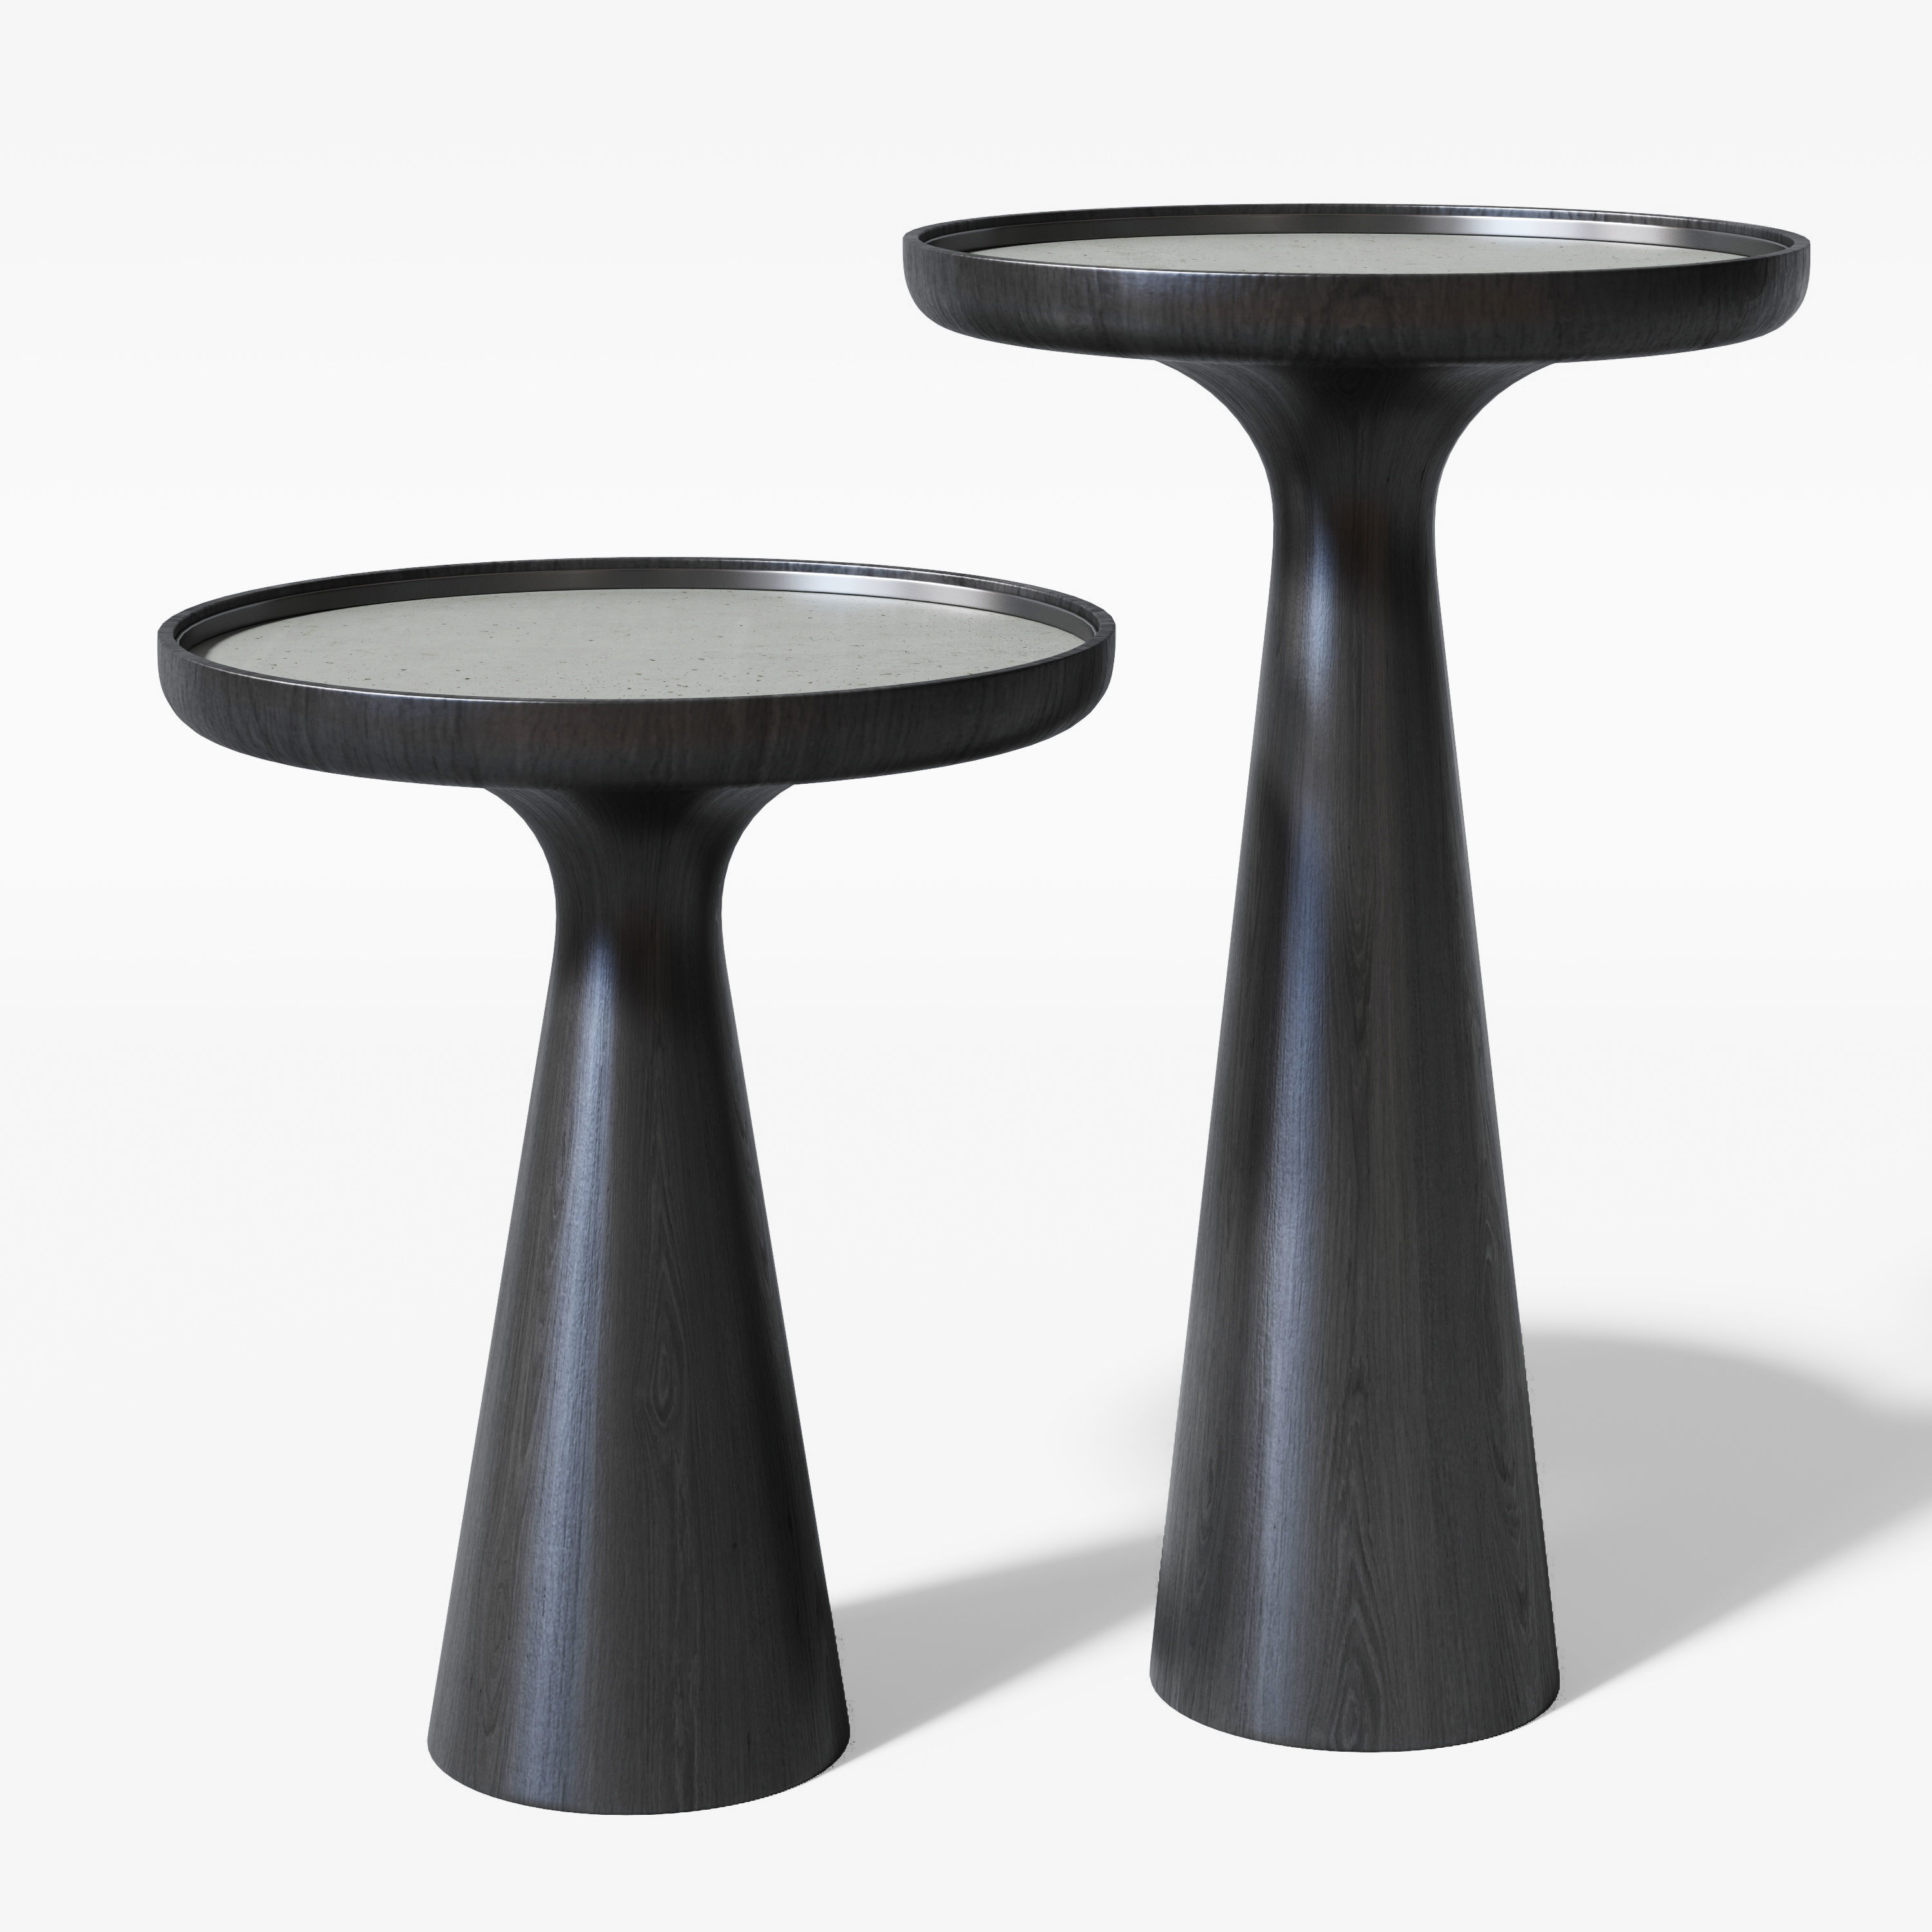 Bellows Walter Knoll Occasional Table